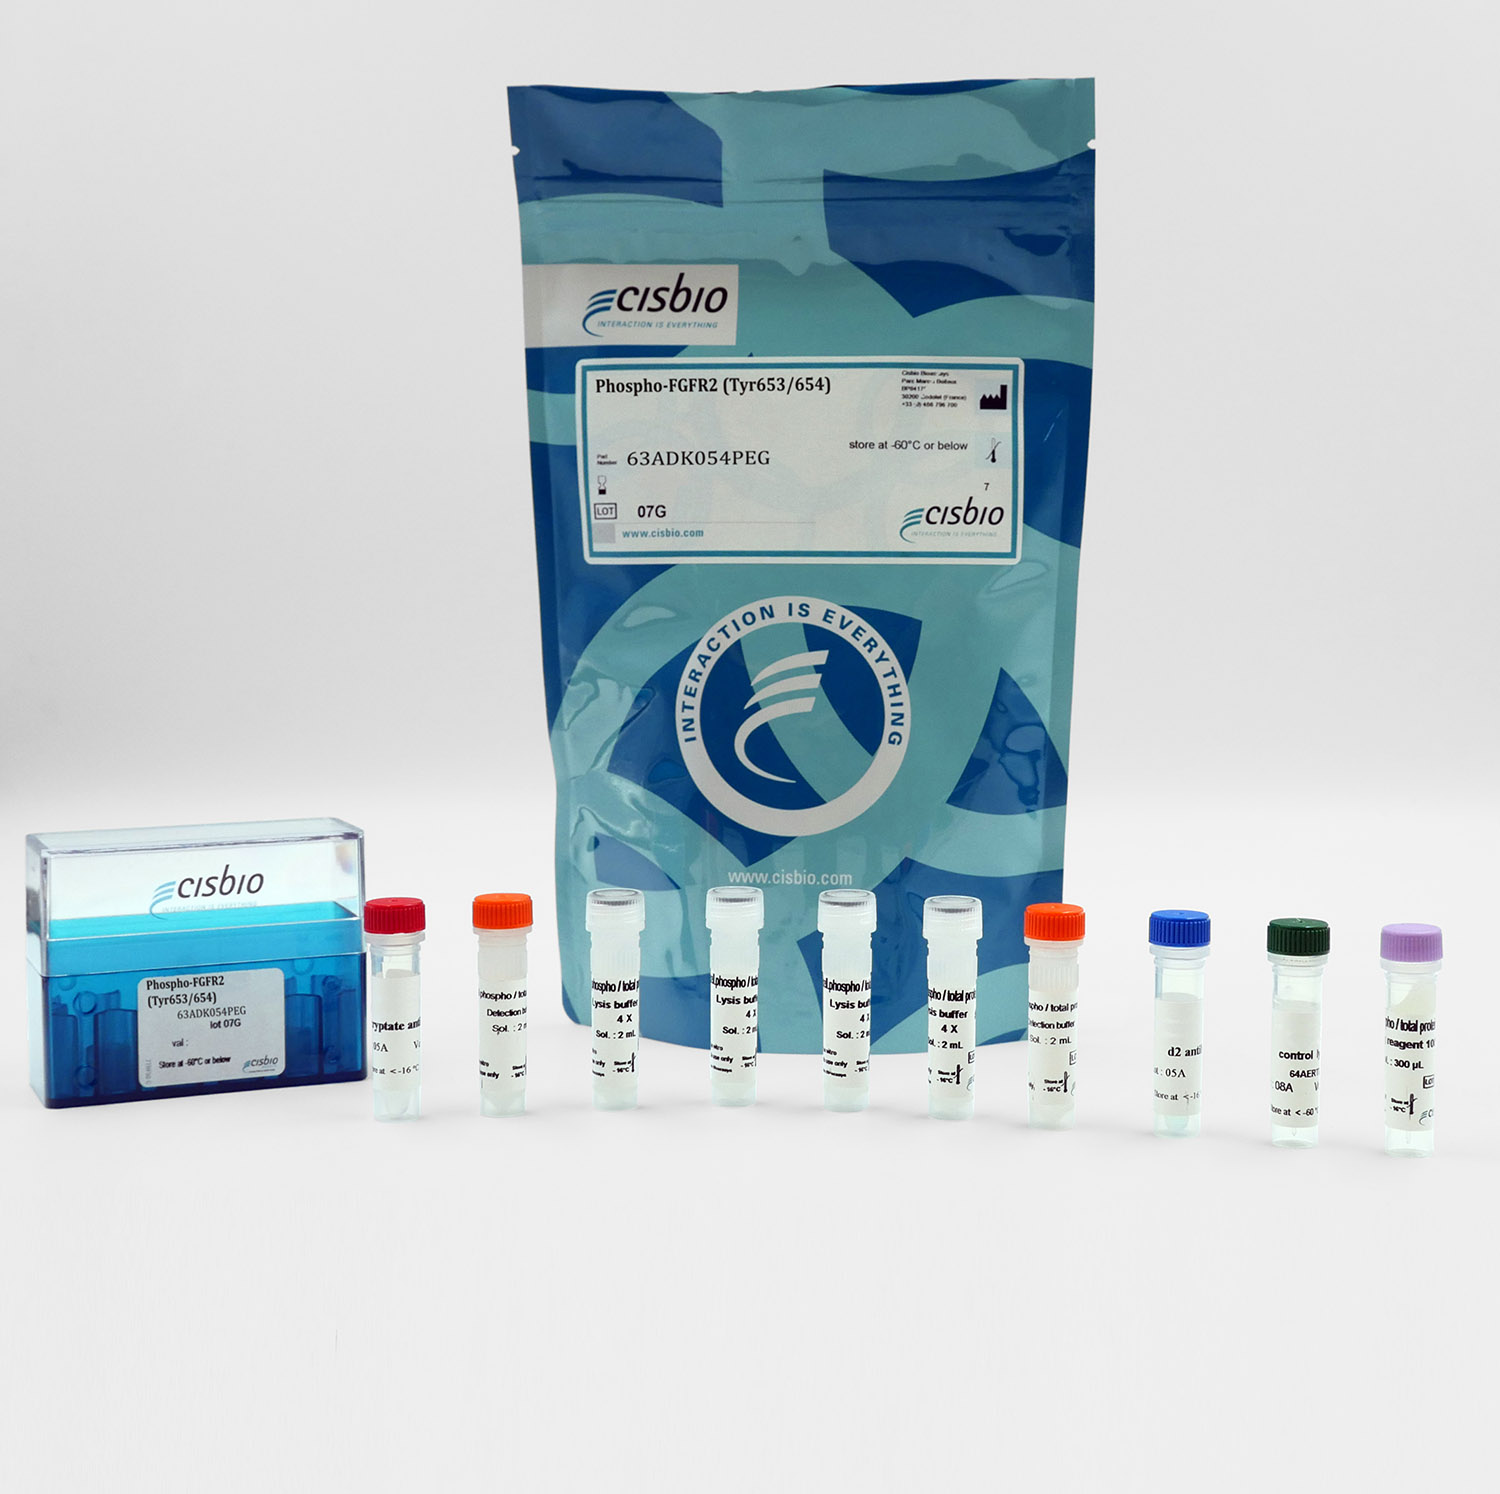 Phospho-FGFR2 (Tyr653/654) cellular kit